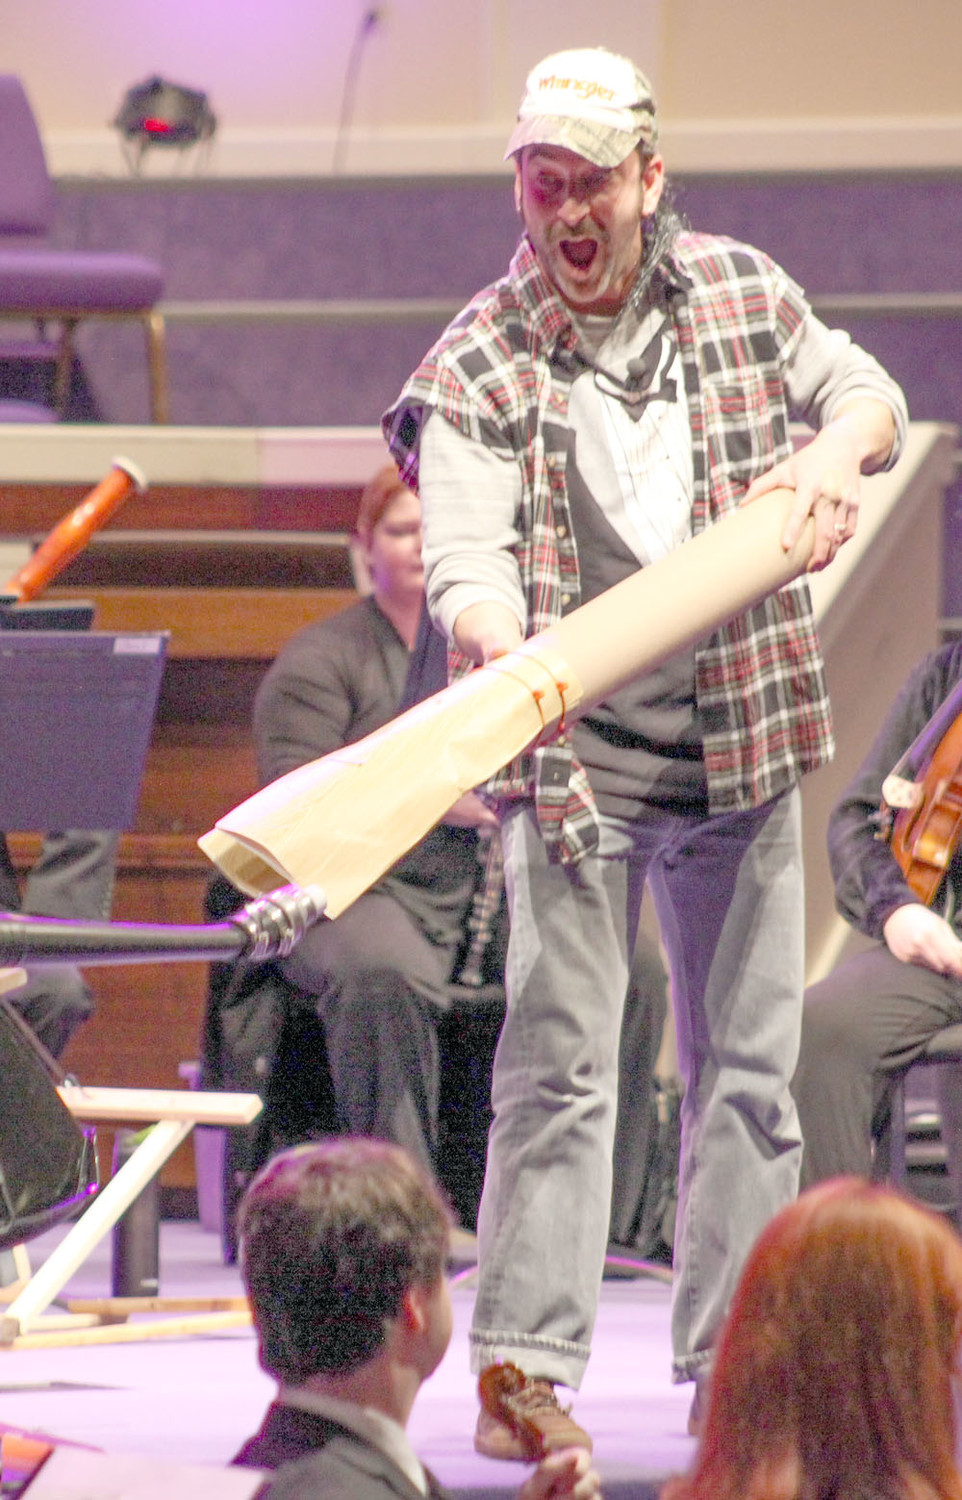 USING A HOMEMADE visual aid made from pieces of wood and a leaf blower, Narrator Tator (pictured at left), demonstrates the vibrations of the double reed oboe.